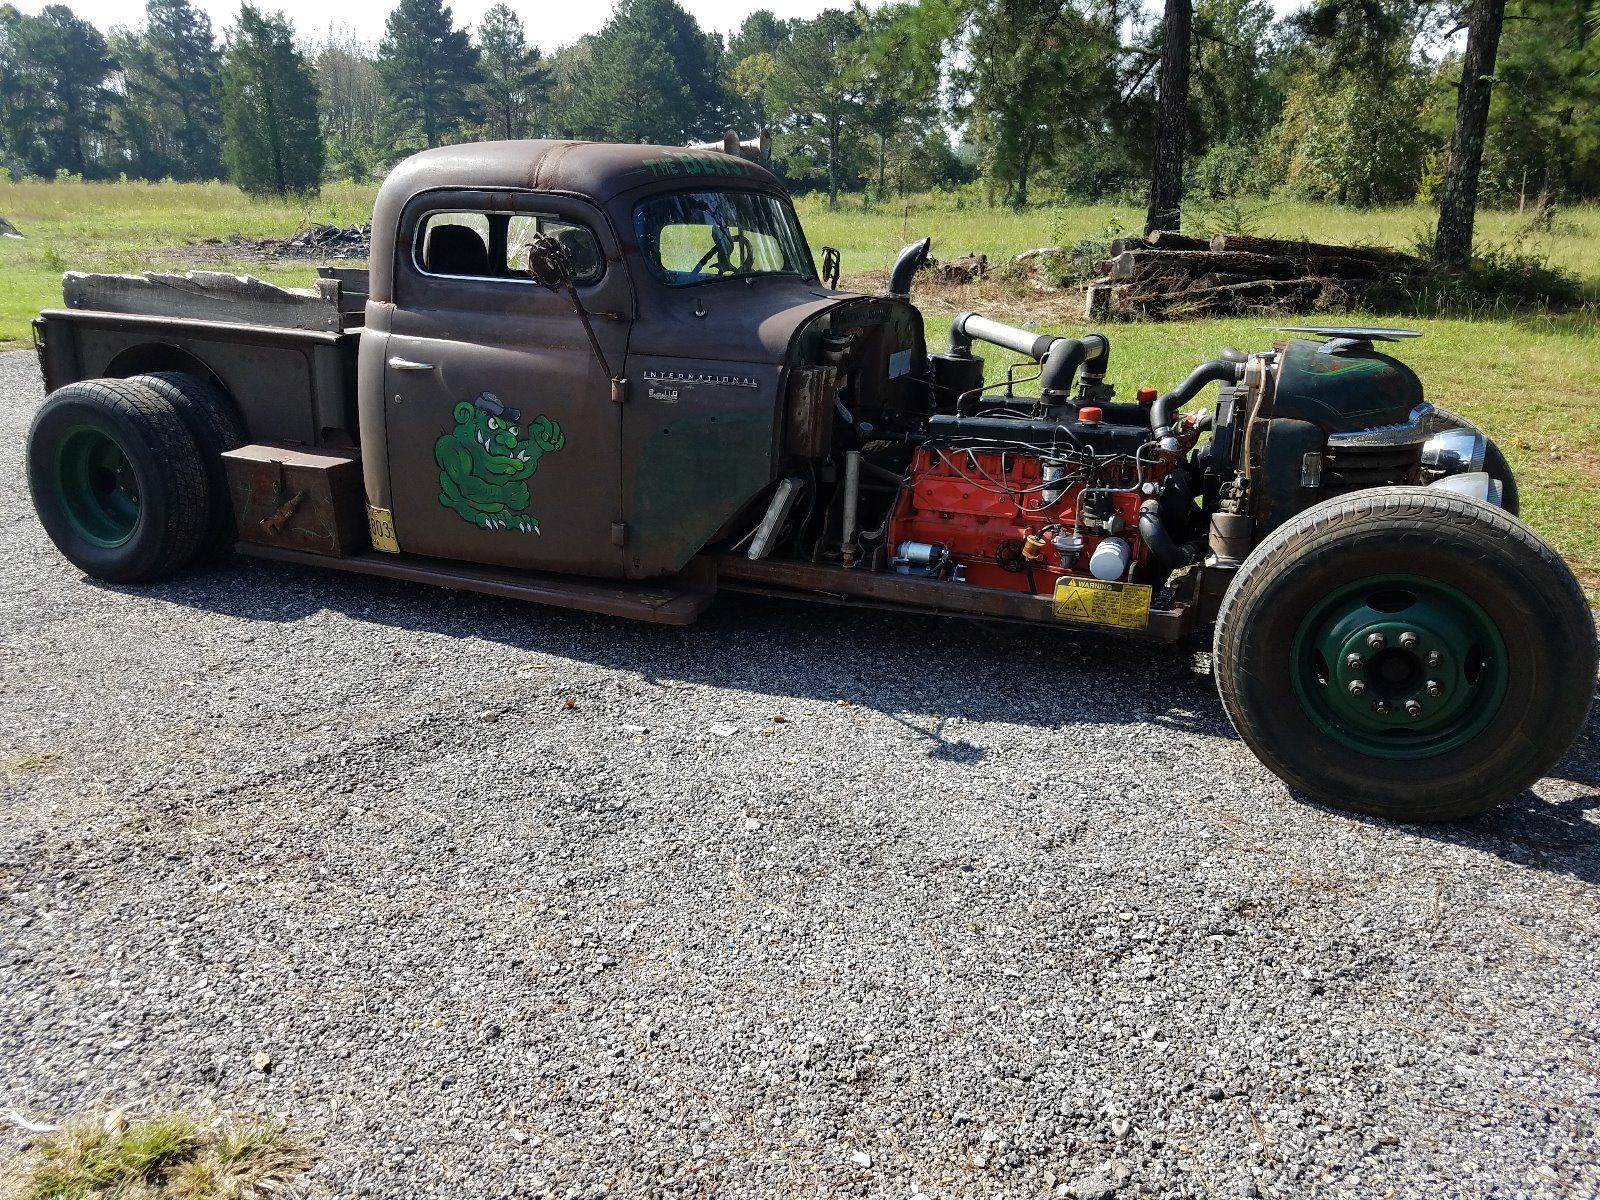 small resolution of 53 international ratrod truck with two 230 6 cylinders turbo 350 transmission belt driven all tube chassis chevy dually rear end with 4 88 gears chain